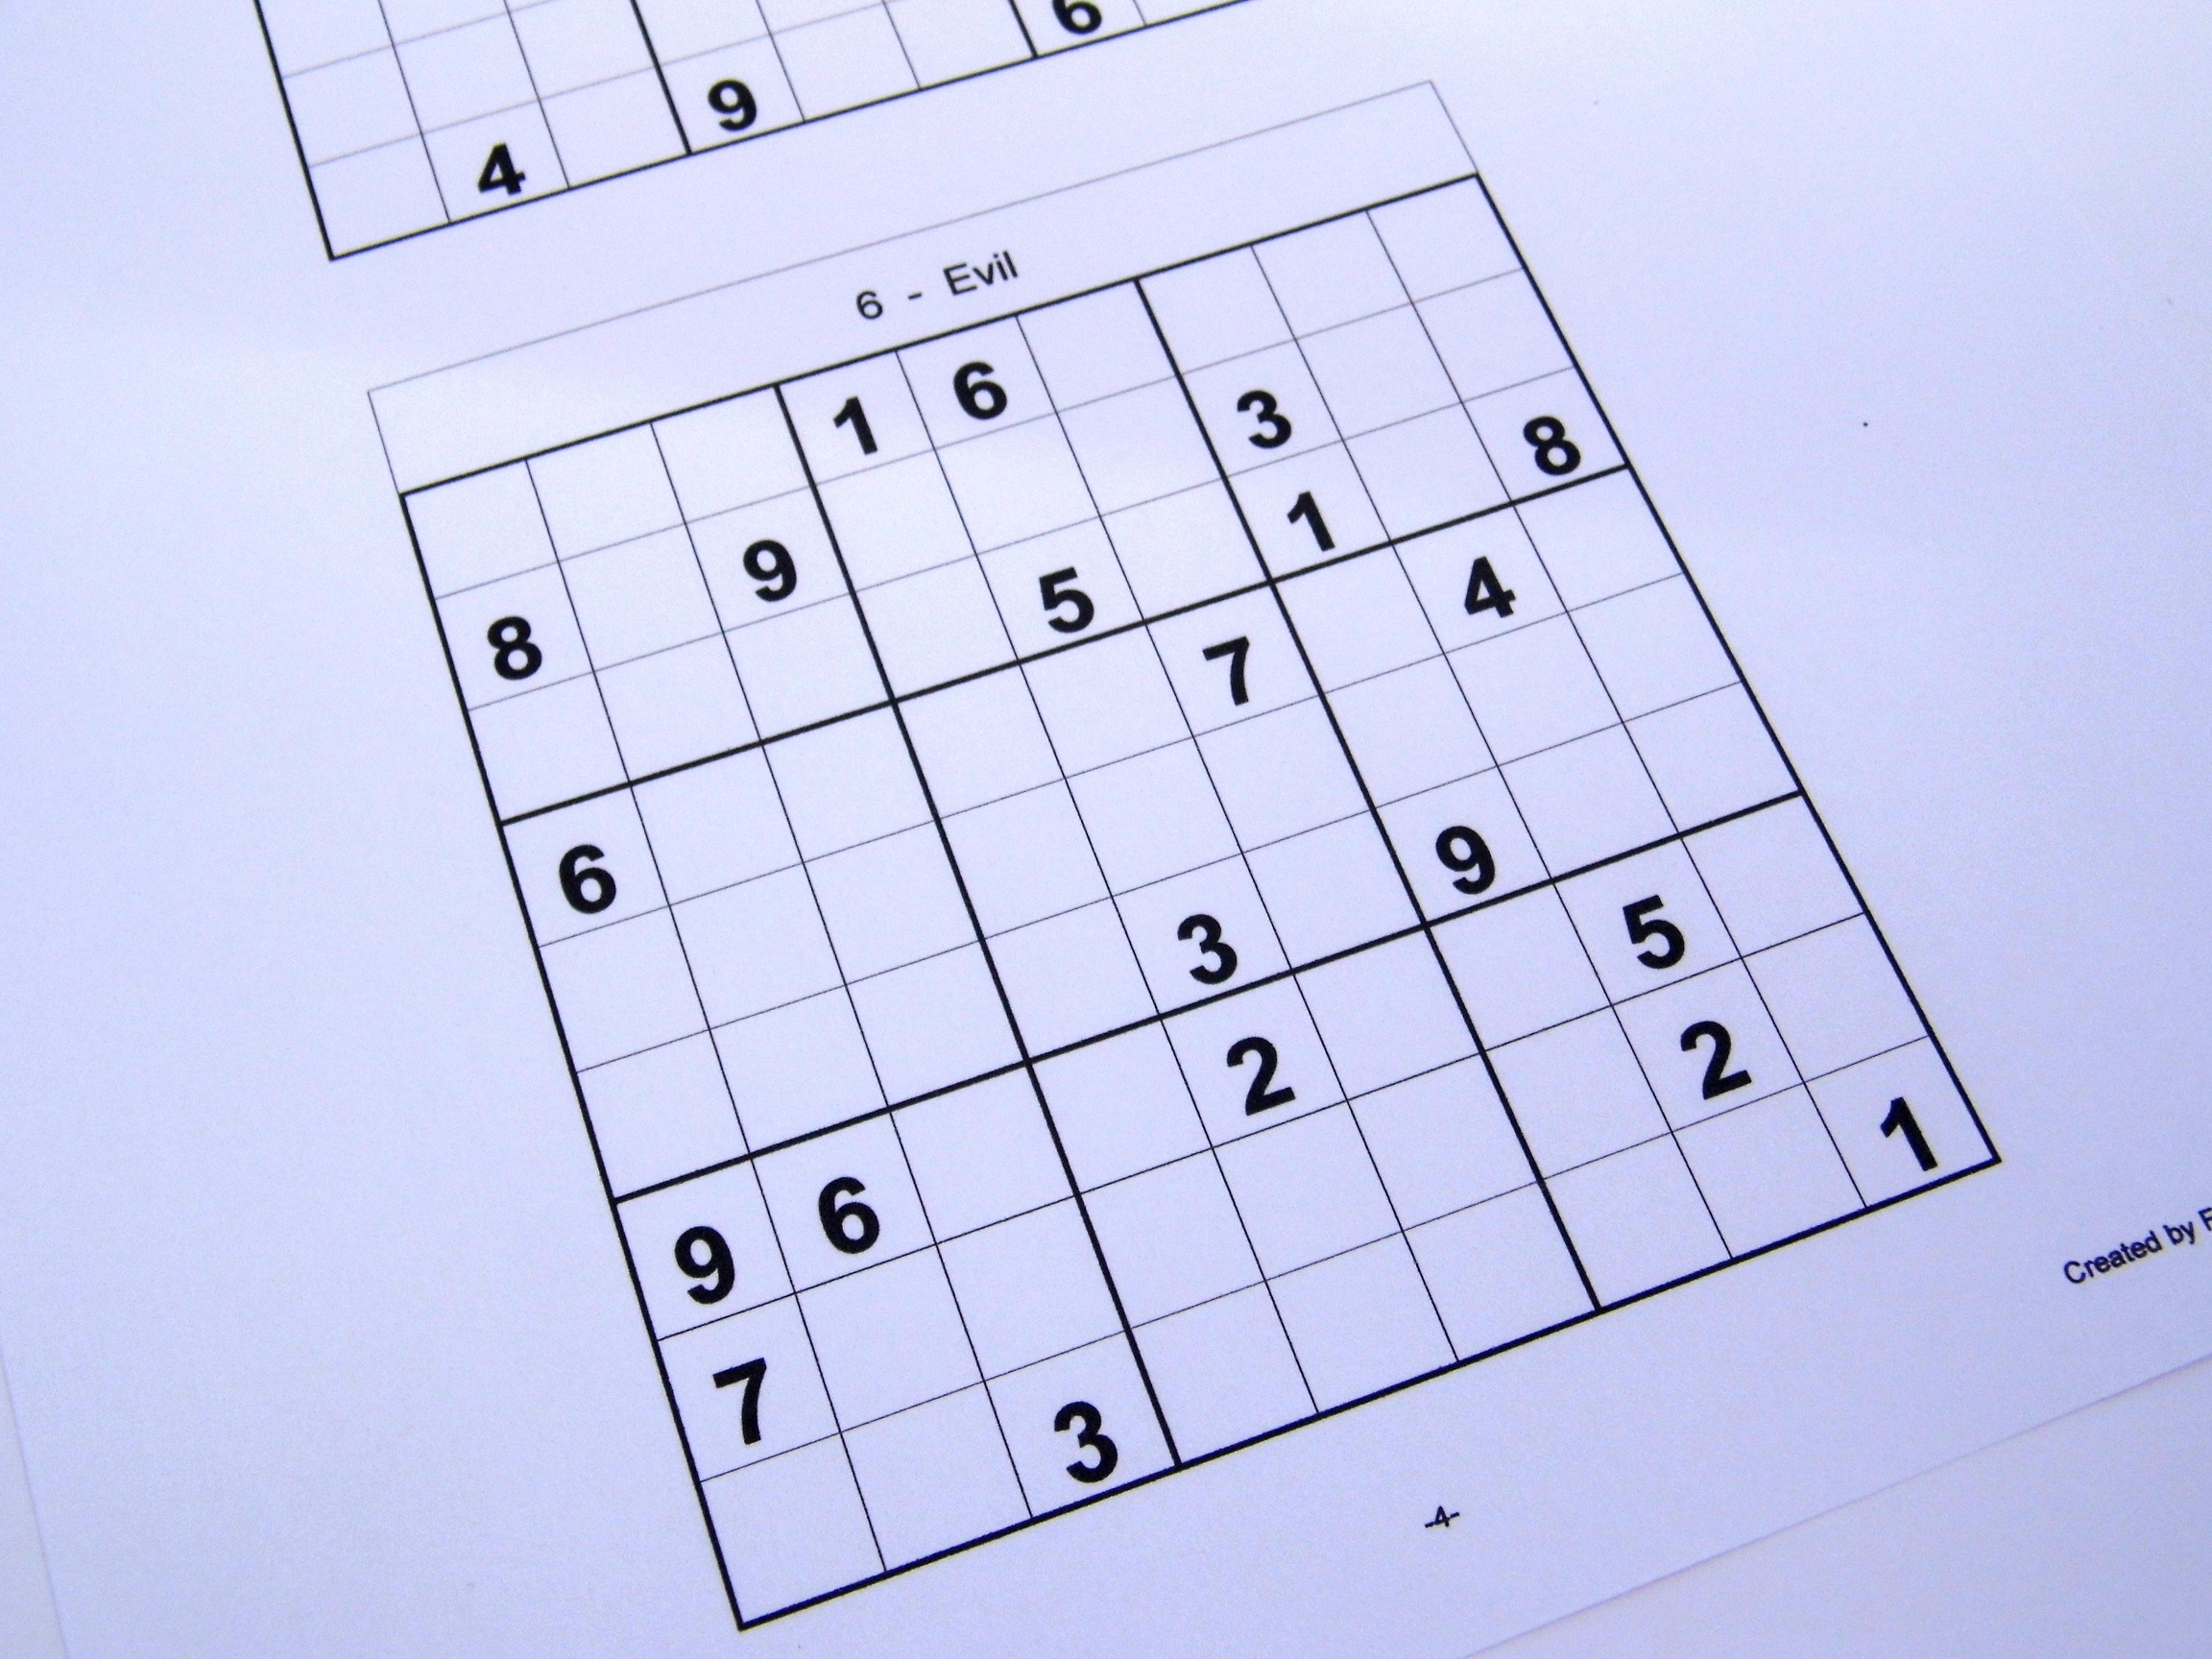 Hard Printable Sudoku Puzzles 6 Per Page – Book 1 – Free Sudoku Puzzles - Free Printable Sudoku Books